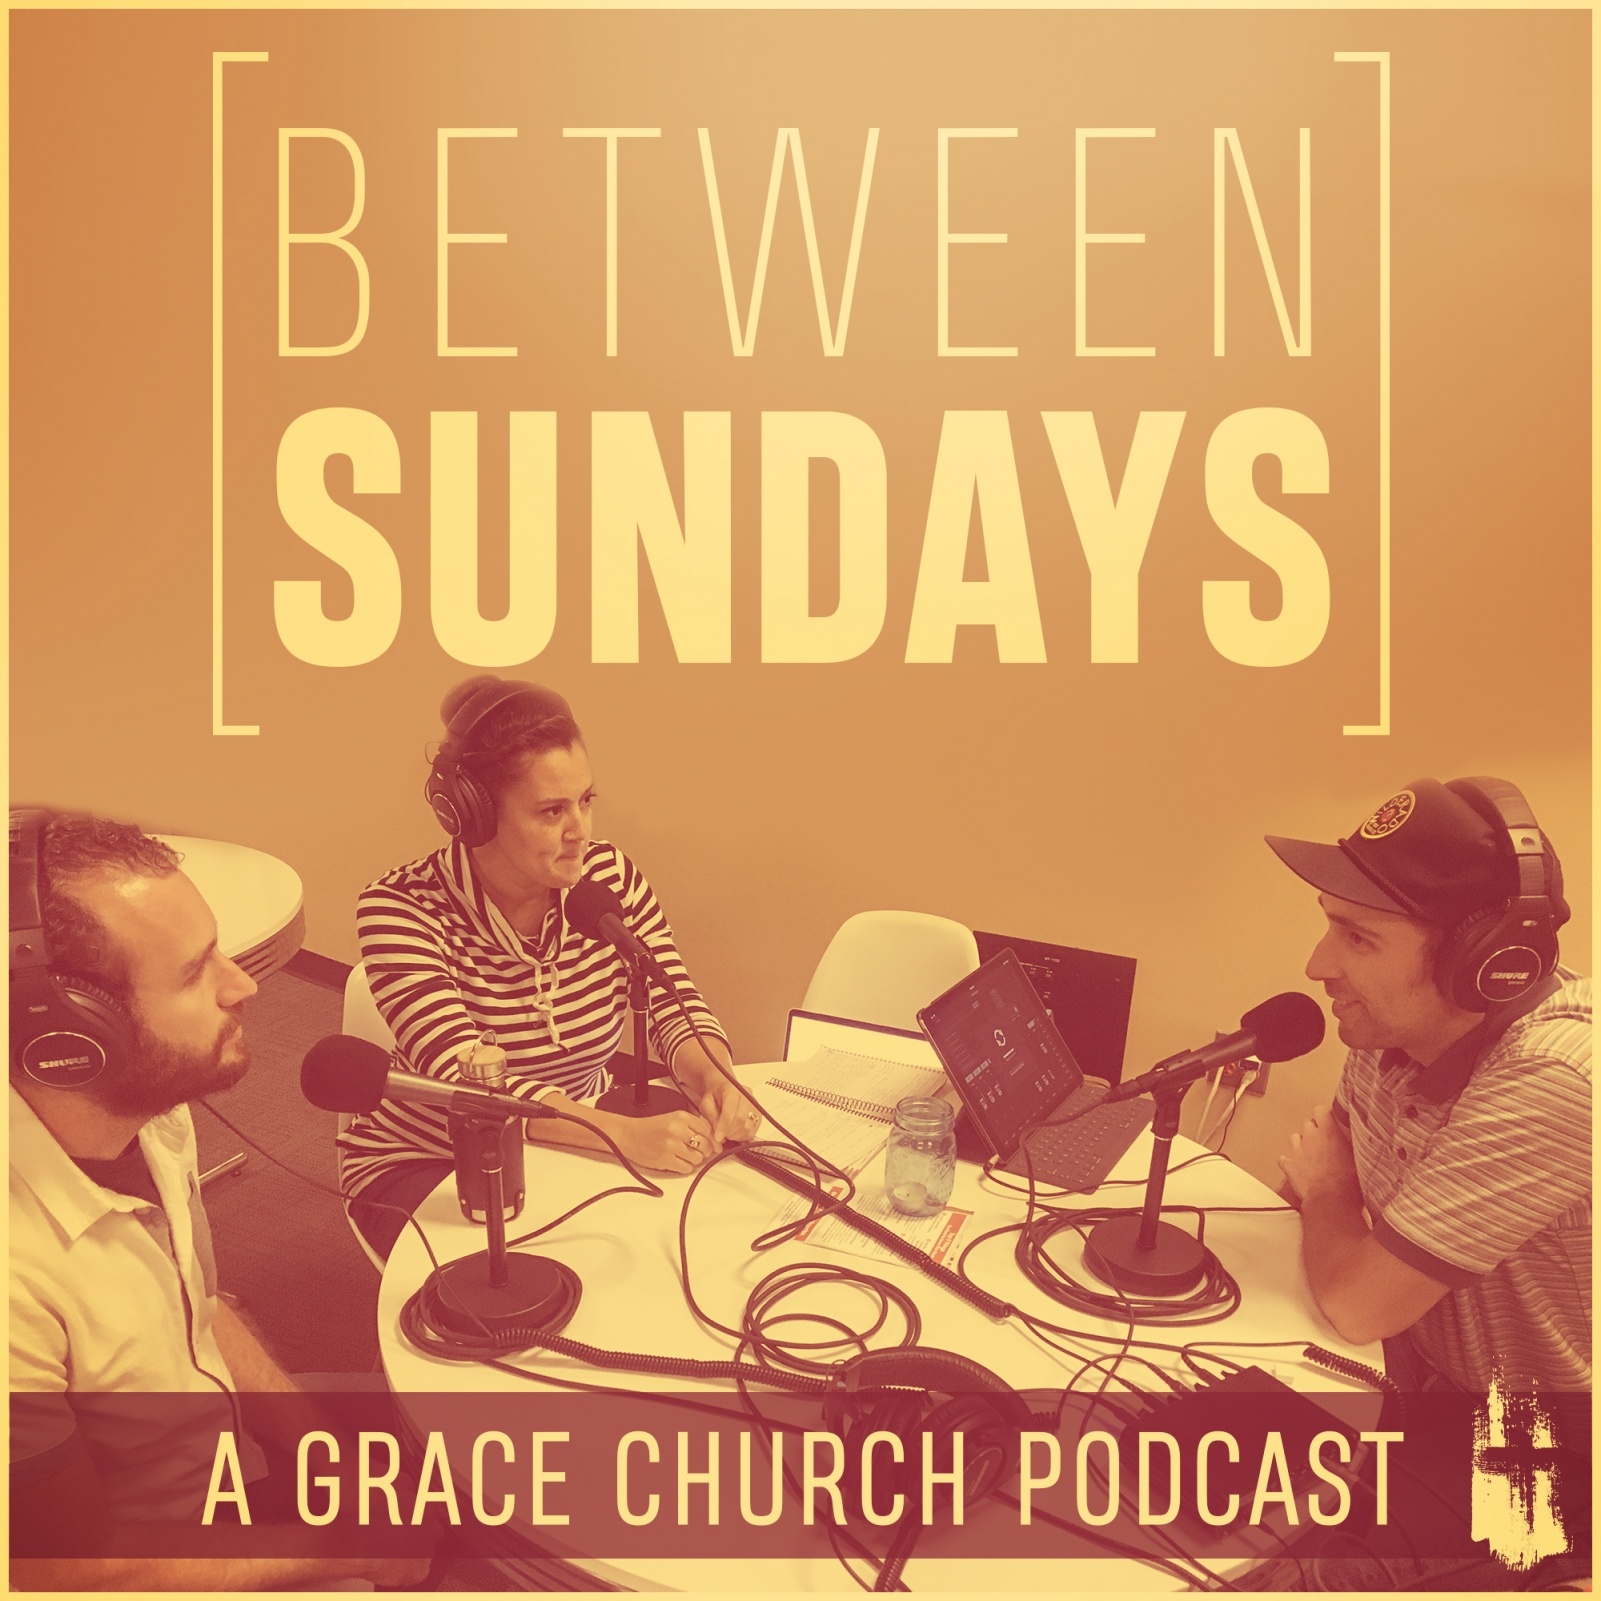 Between Sundays Episode 25 Prodigal Son(s)